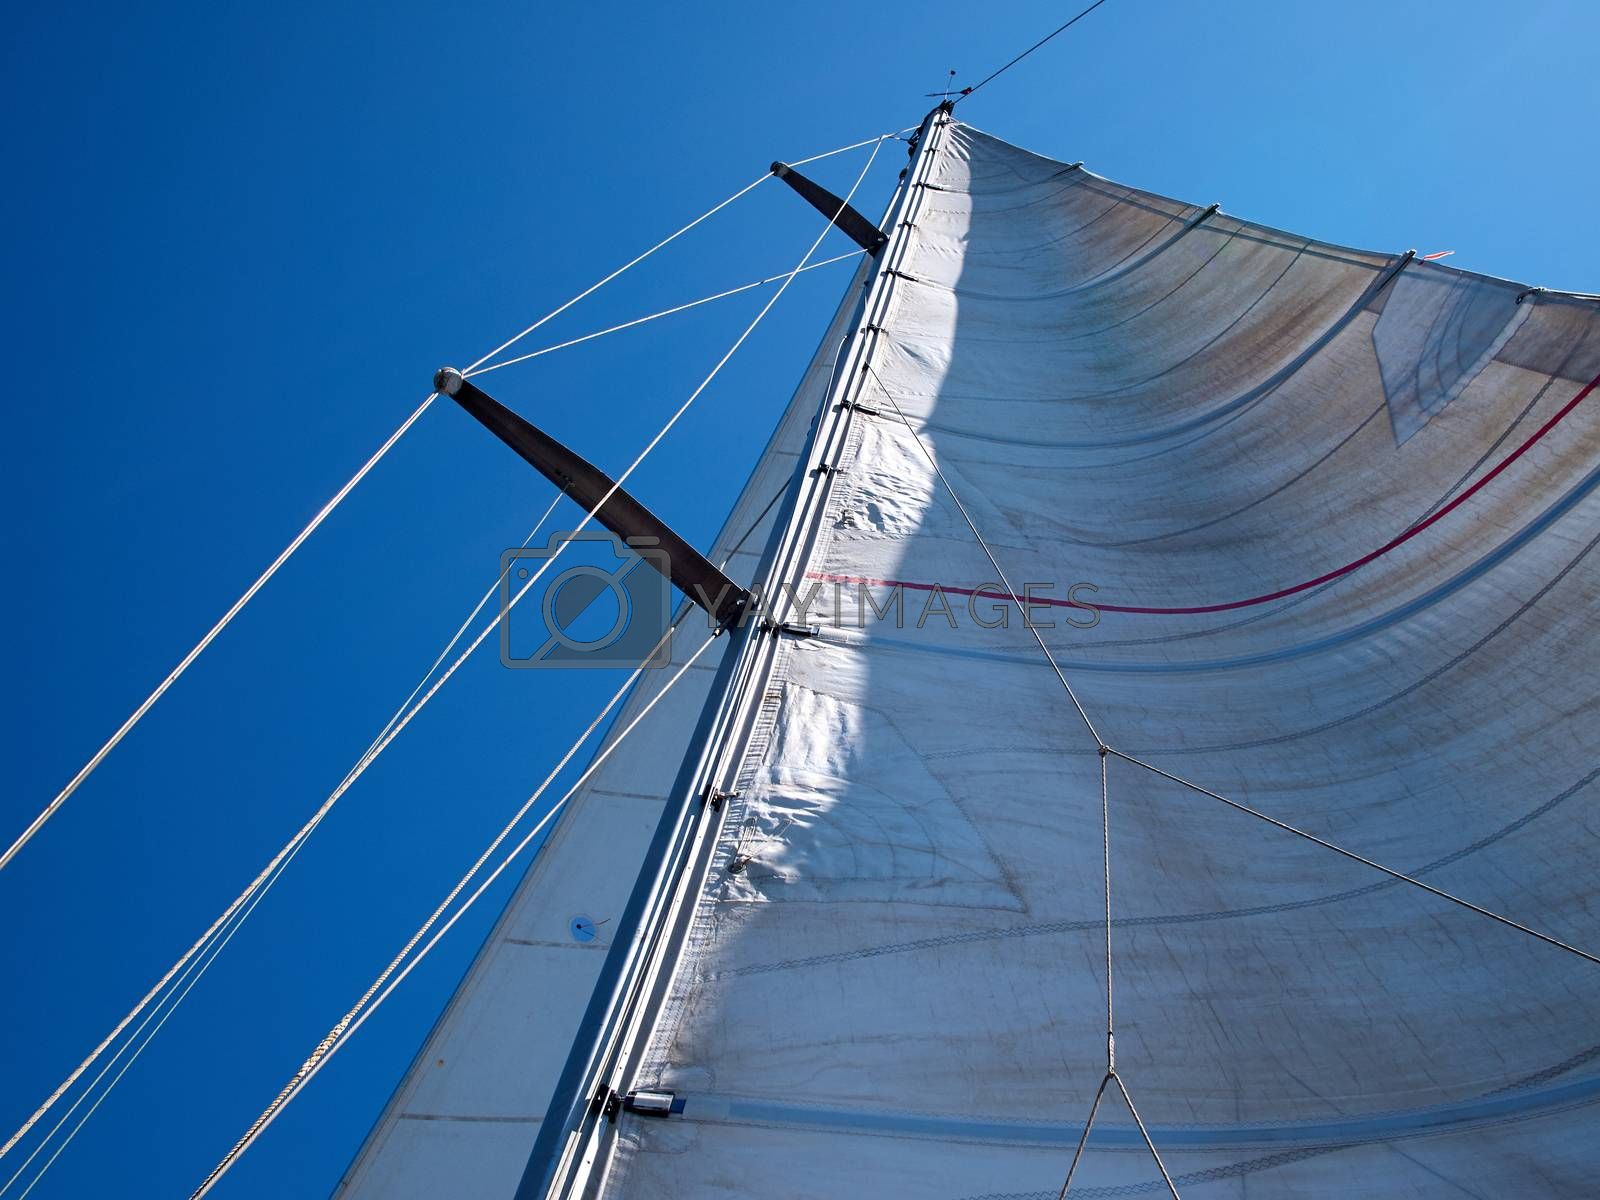 Sail of a sailing boat against sky great sea sport image